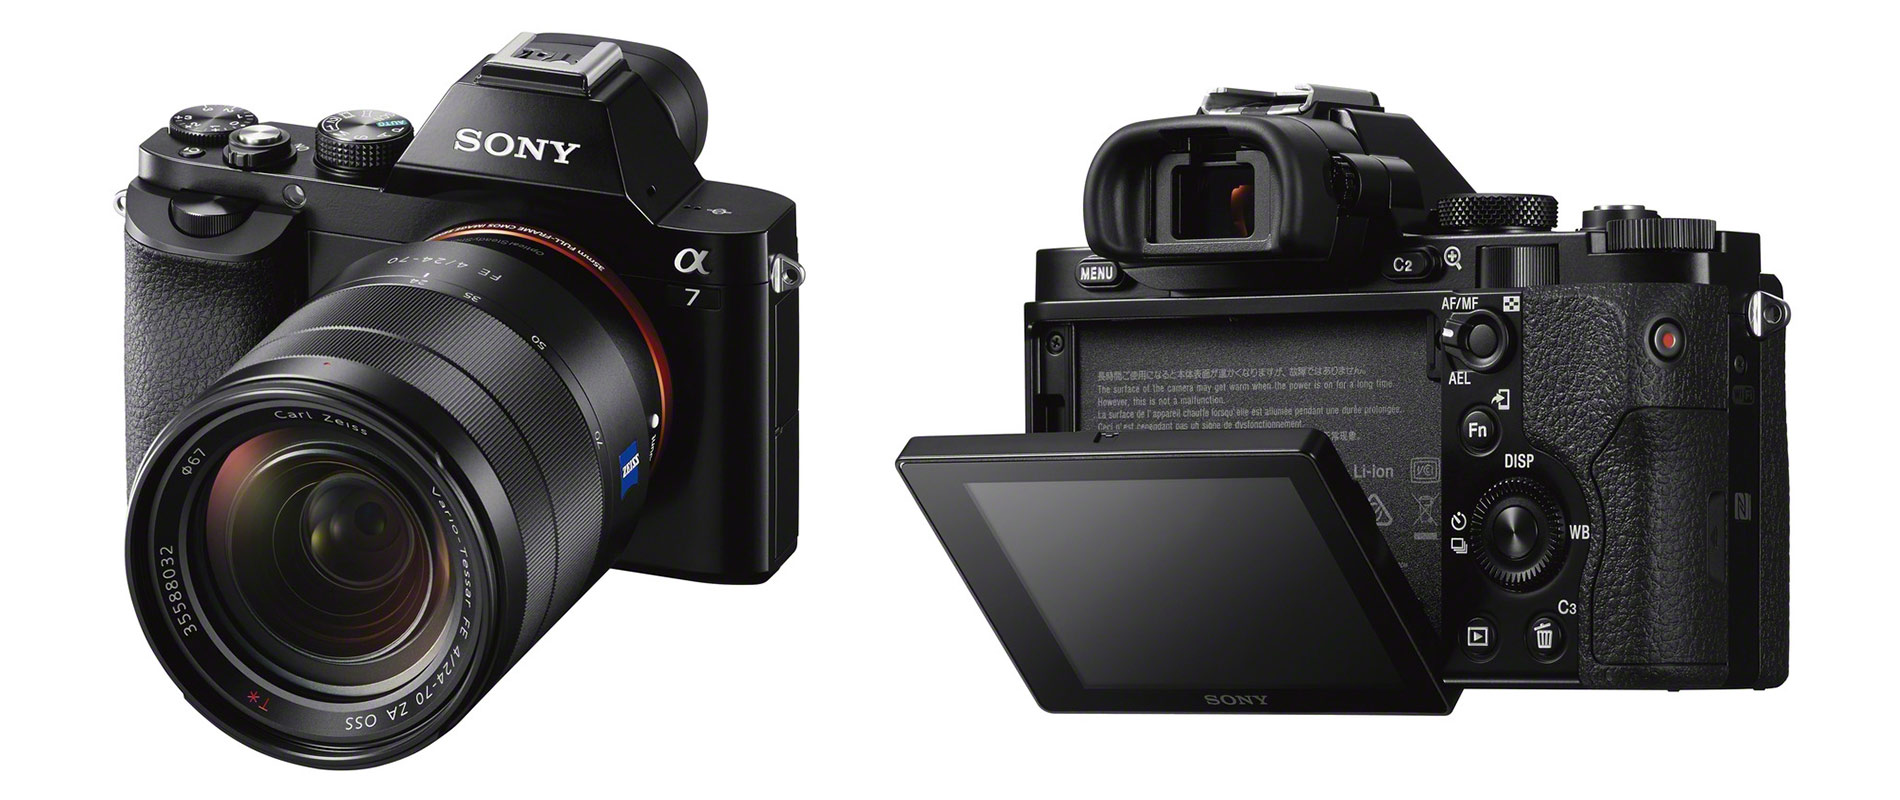 Sony Alpha A7 front and back image